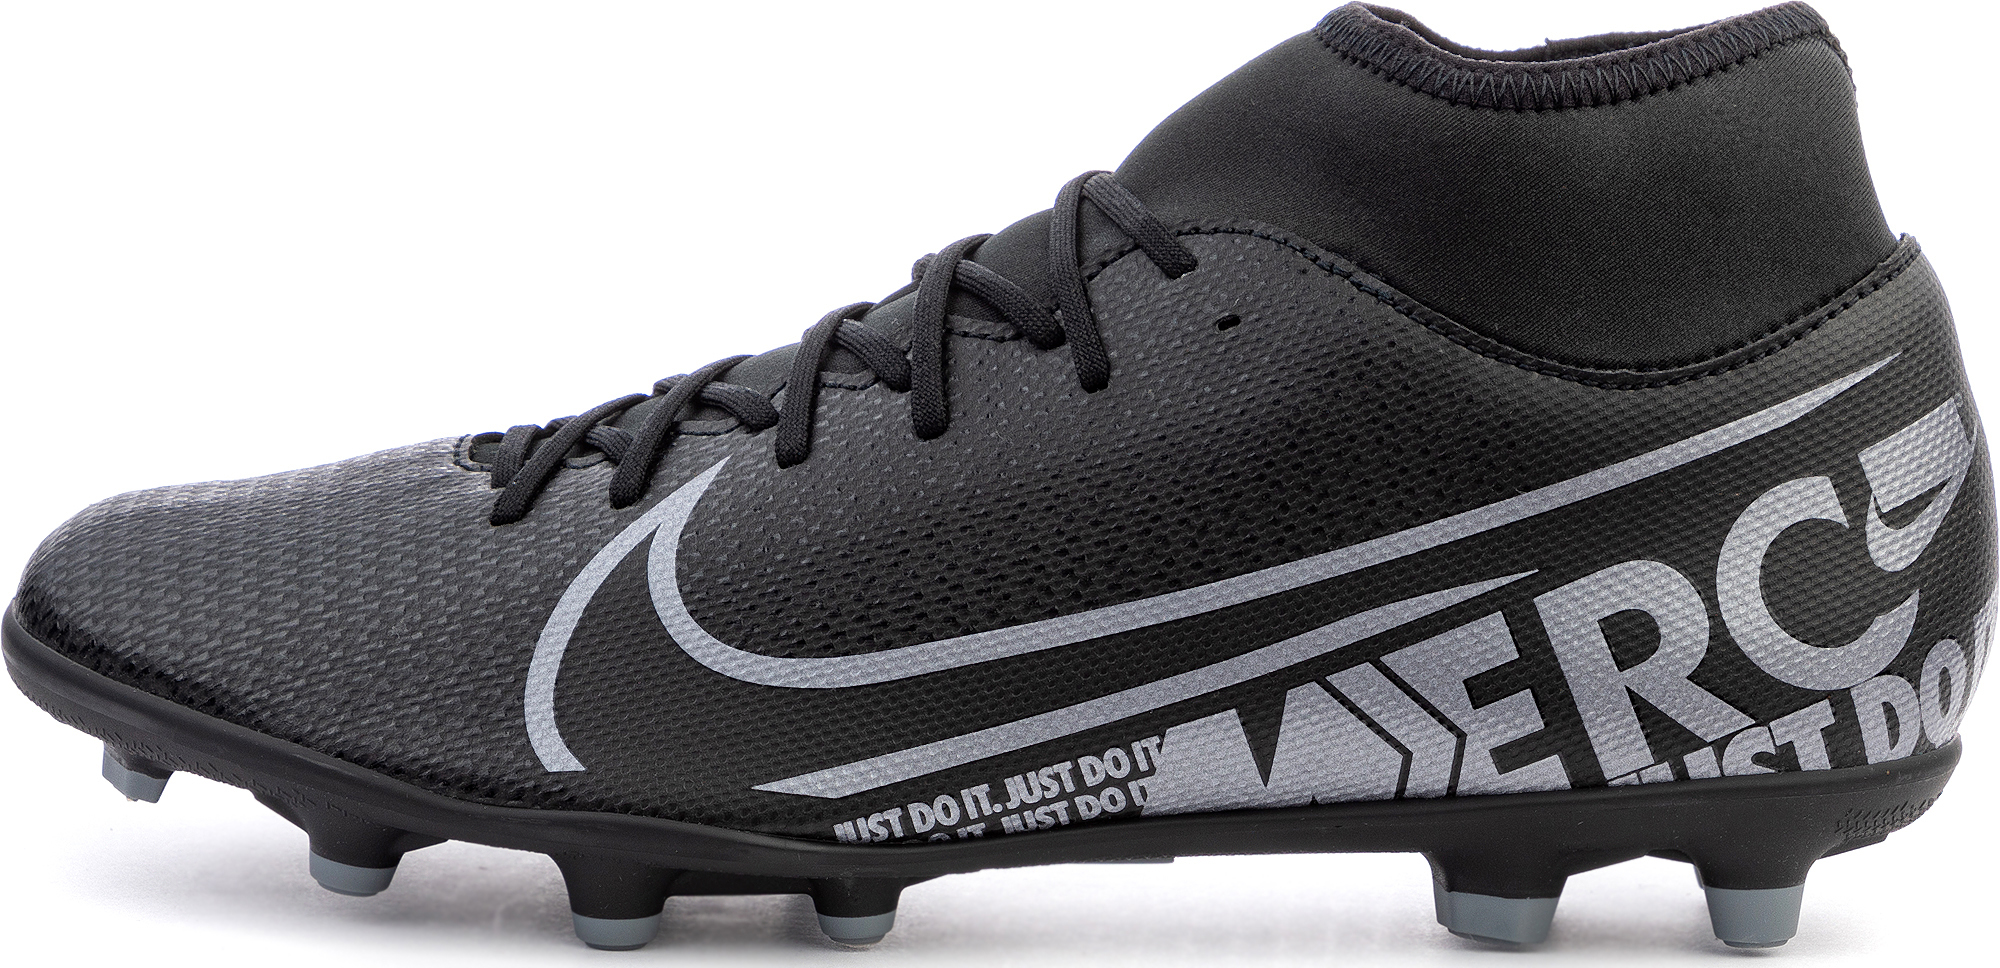 Nike Бутсы мужские Nike Superfly 7 Club FG/MG, размер 42 бутсы nike superfly 6 club fg mg ah7363 001